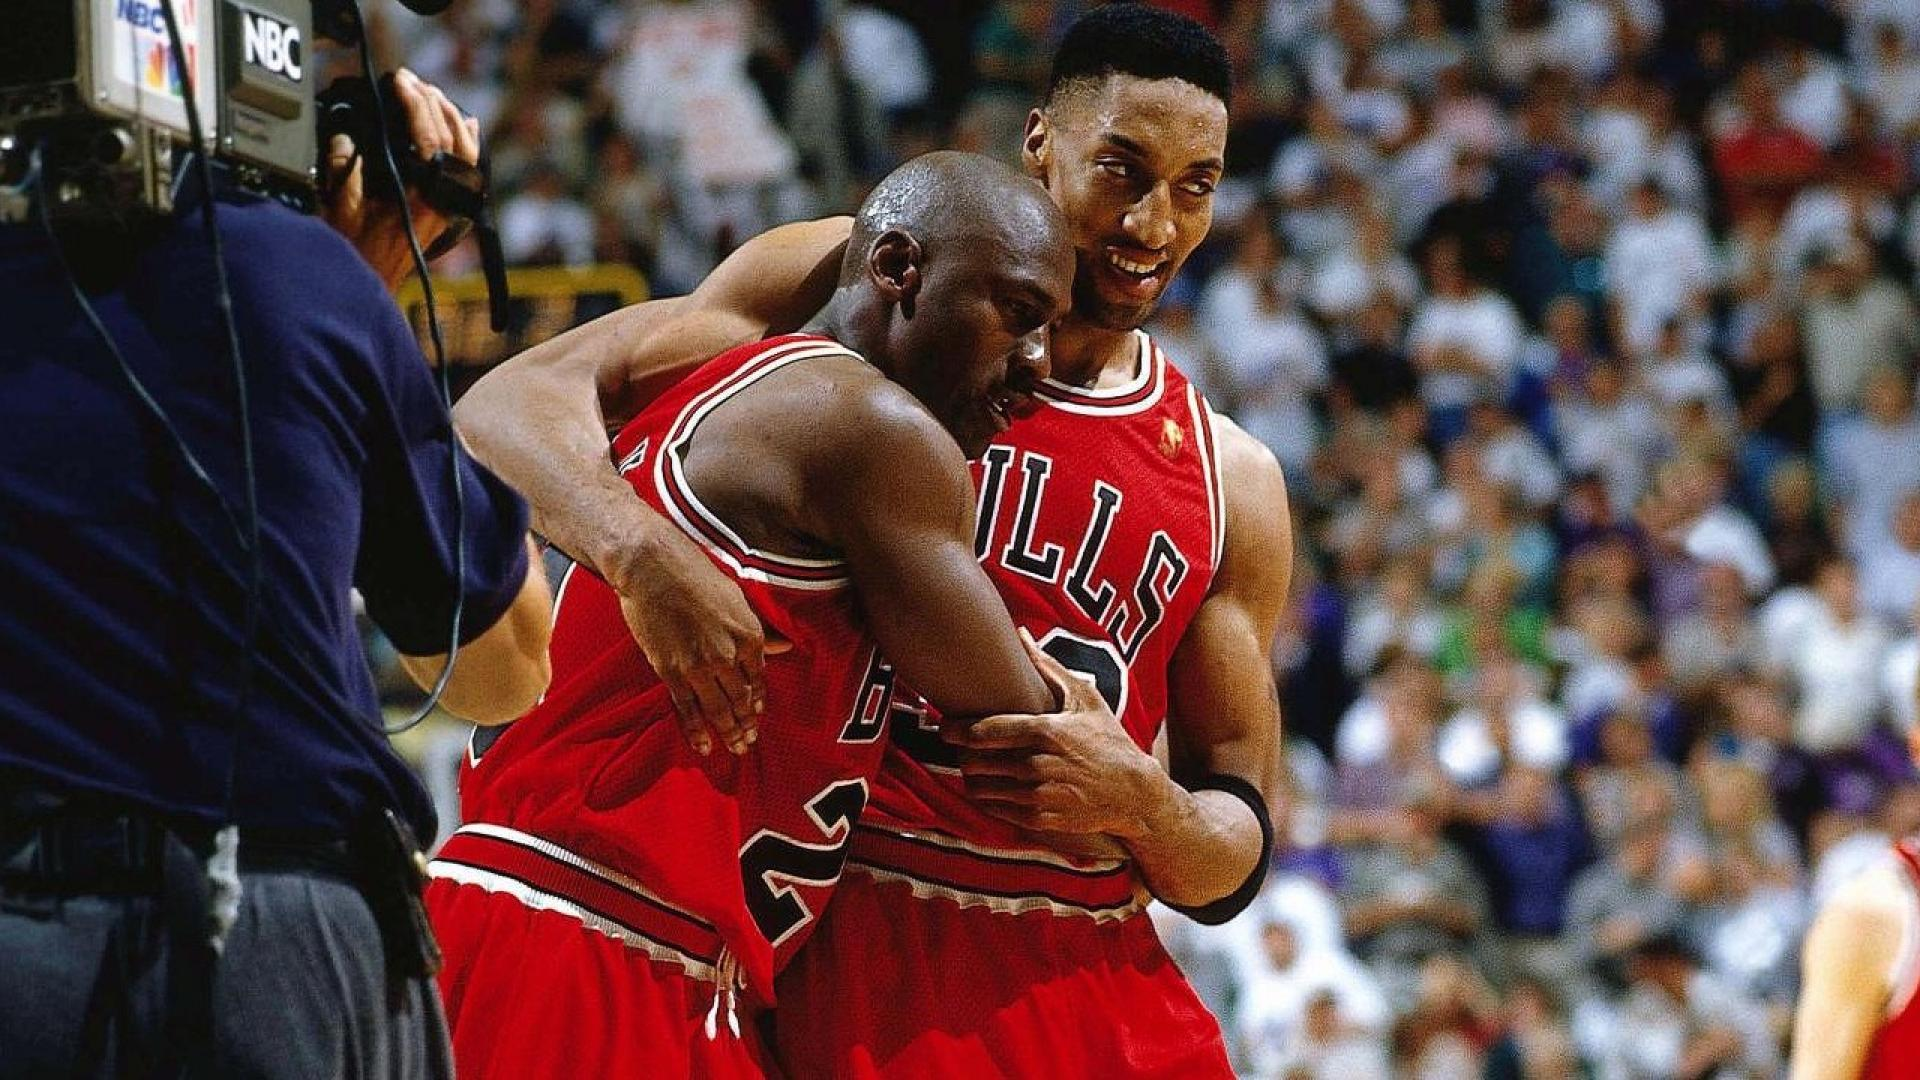 Top NBA Finals moments: Michael Jordan's flu game in 1997 Finals